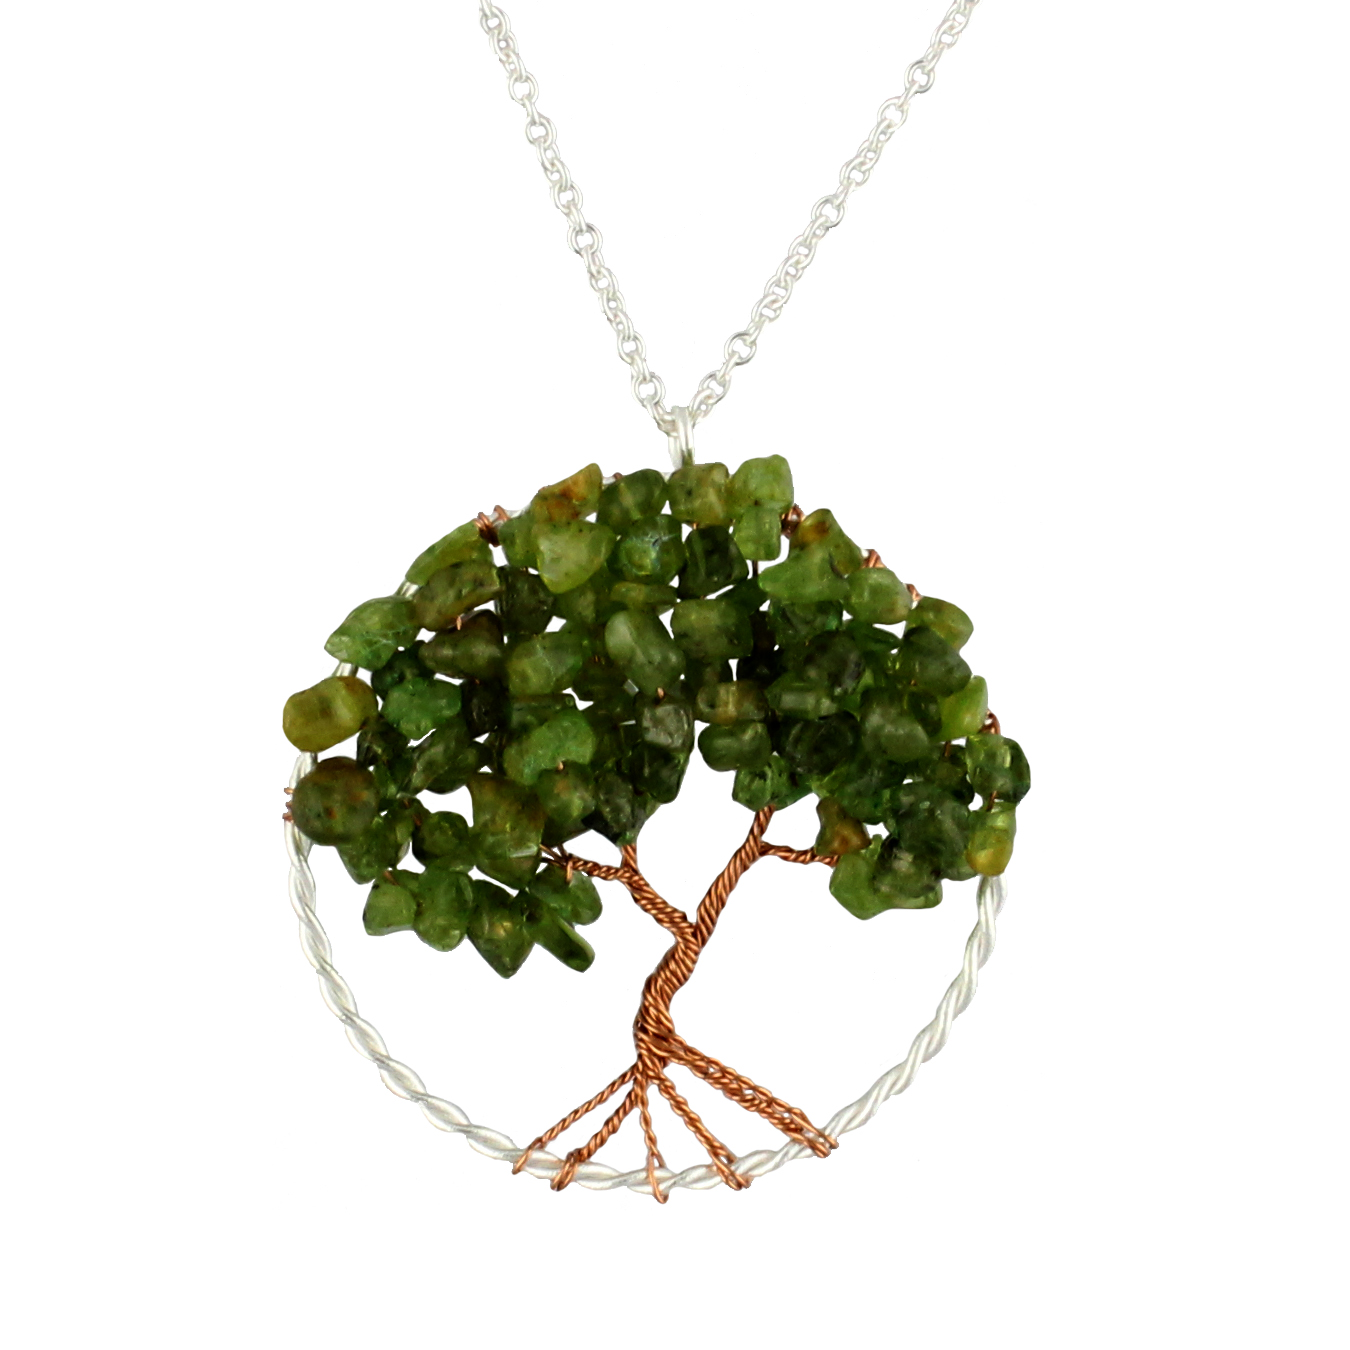 Silver-Plated Brass Copper Trunk Tree of Life Long Green Peridot Gemstone Necklace, 30 inches